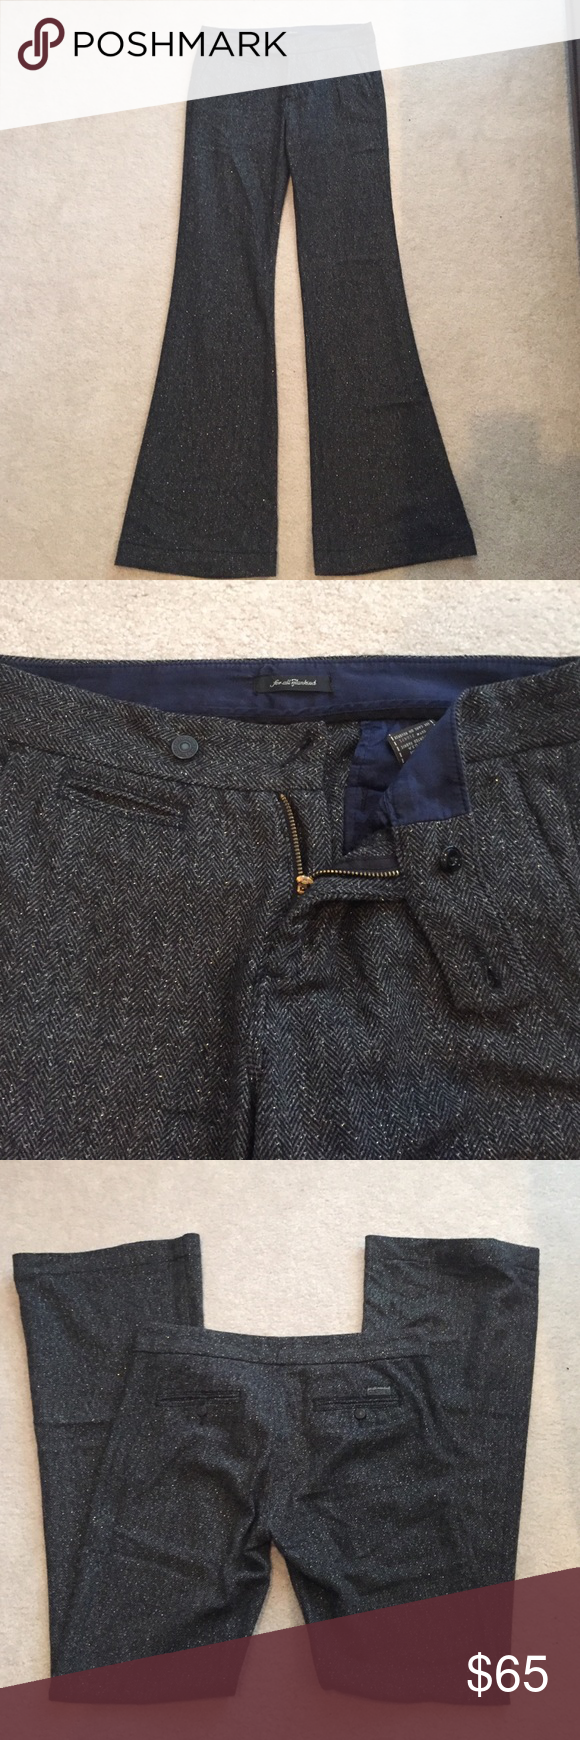 7 For All Mankind Bootleg Holiday Pant 7 For All Mankind Bootleg Holiday Pant - Super comfortable stretch pant 7 For All Mankind Pants Trousers